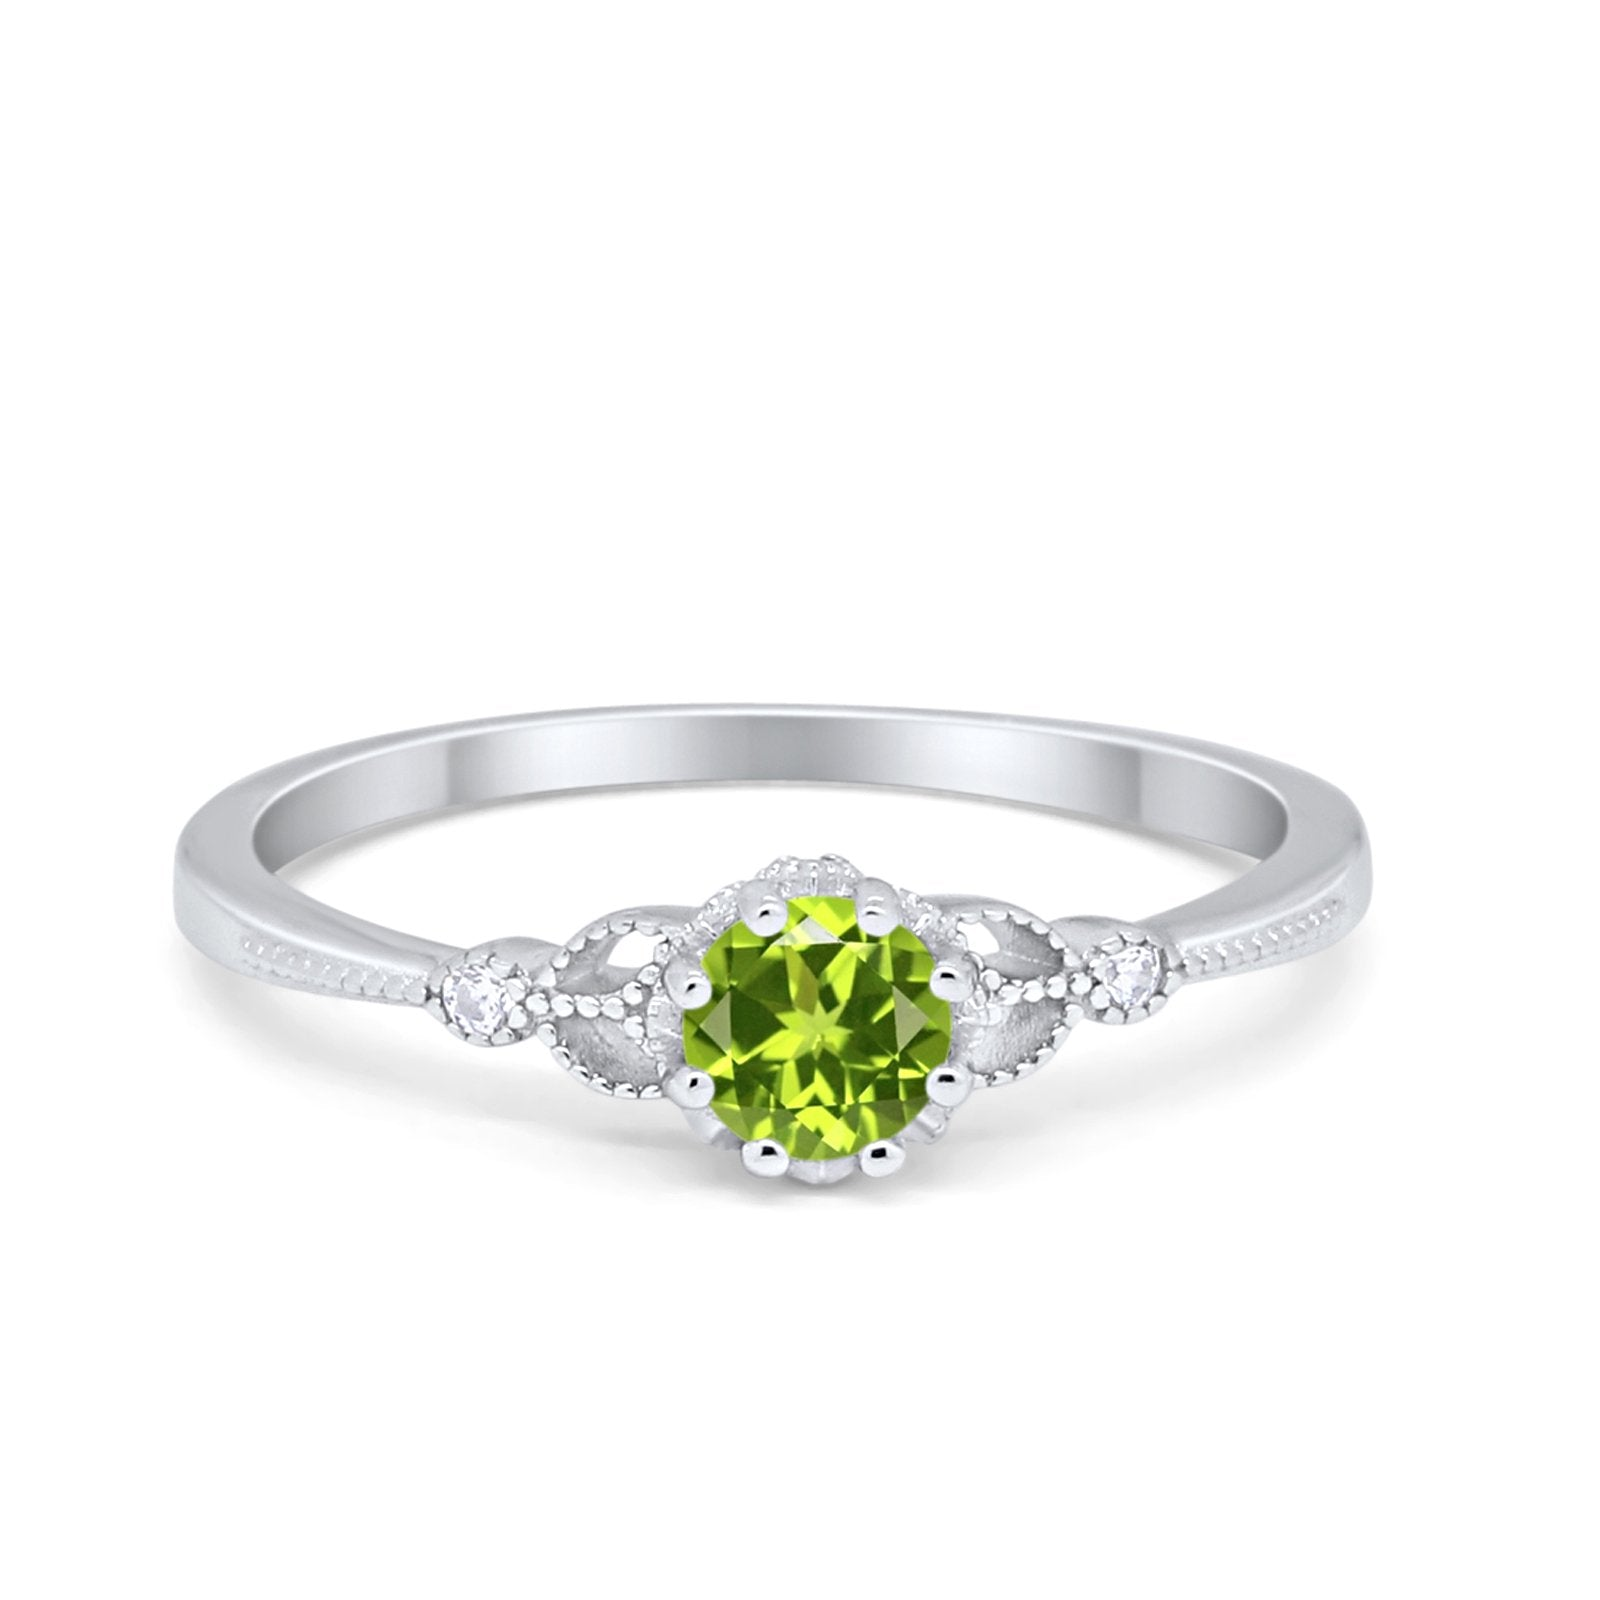 Solitaire Art Deco Wedding Engagement Ring Round Cubic Zirconia 925 Sterling Silver Choose Color